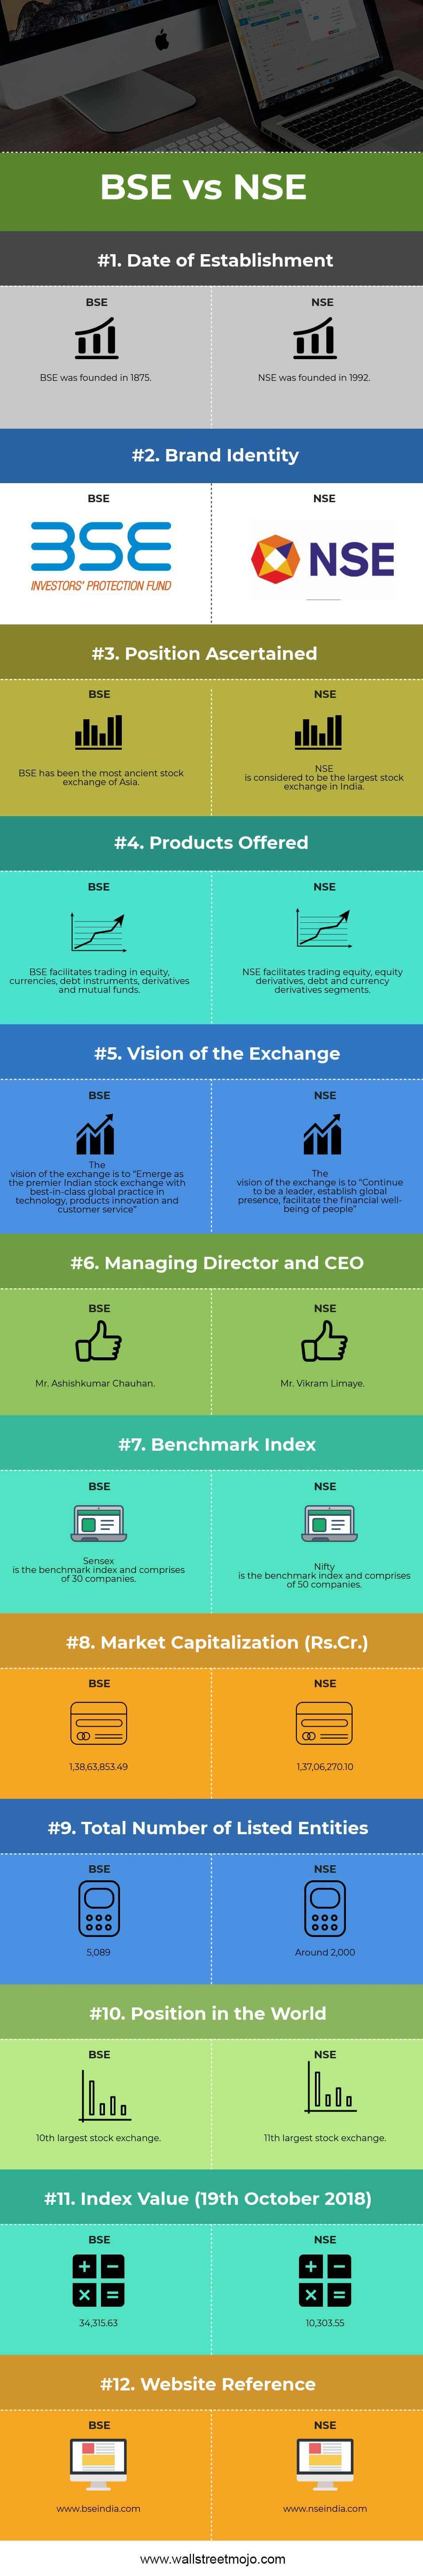 BSE-vs-NSE